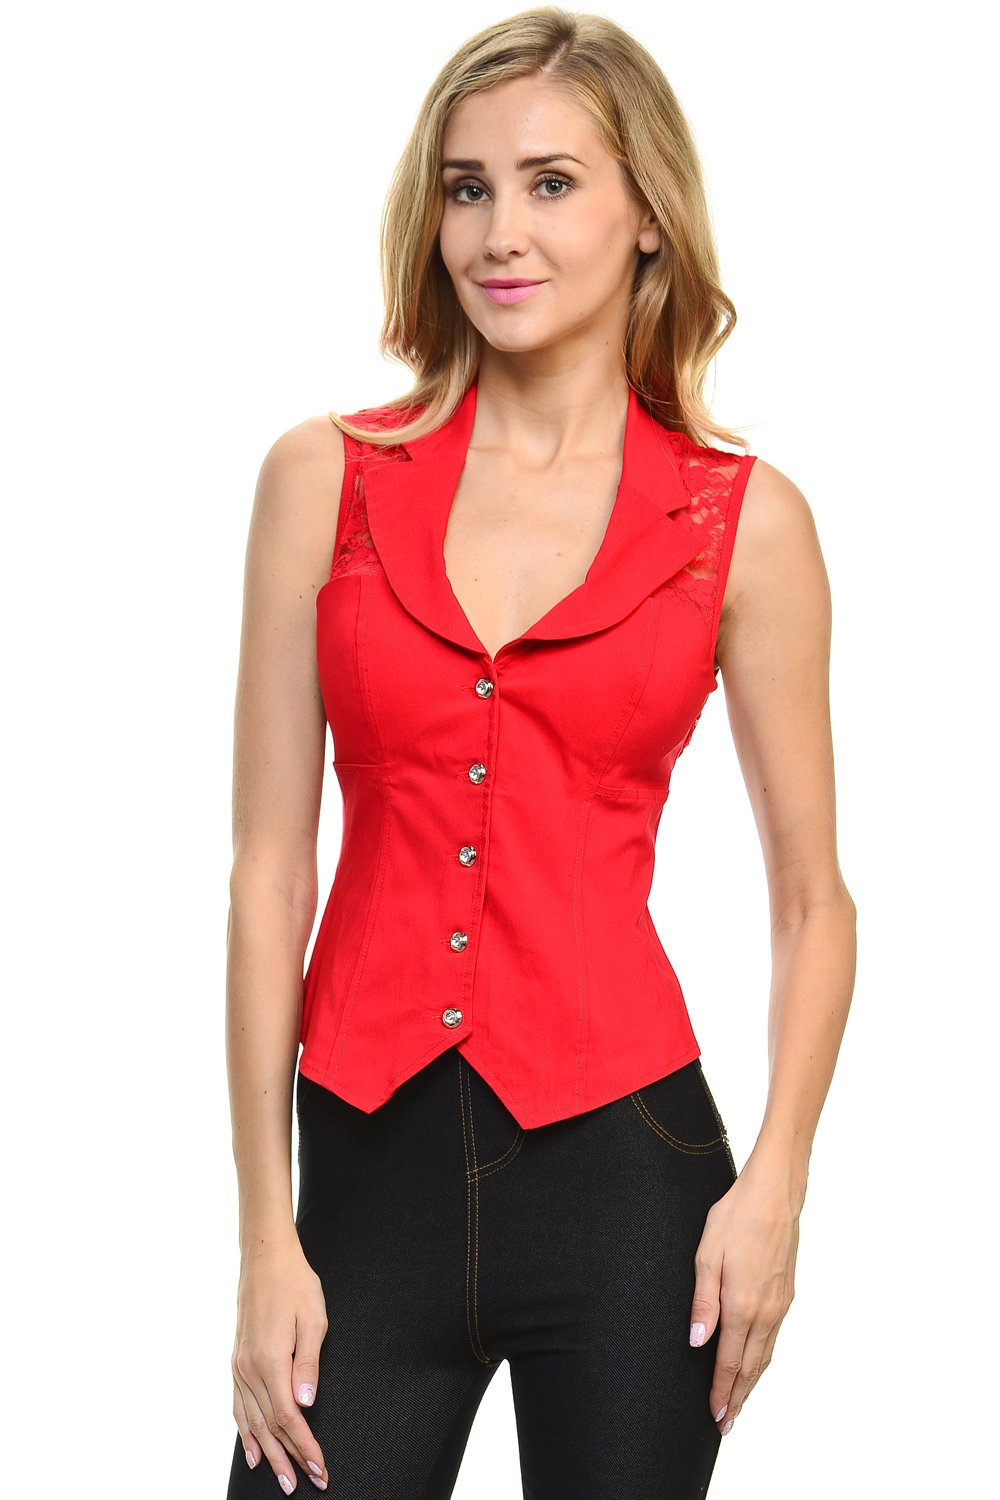 Sexy Rhinestone Button Spandex Sleeveless Collar Top with Back Lace (Medium, Red)